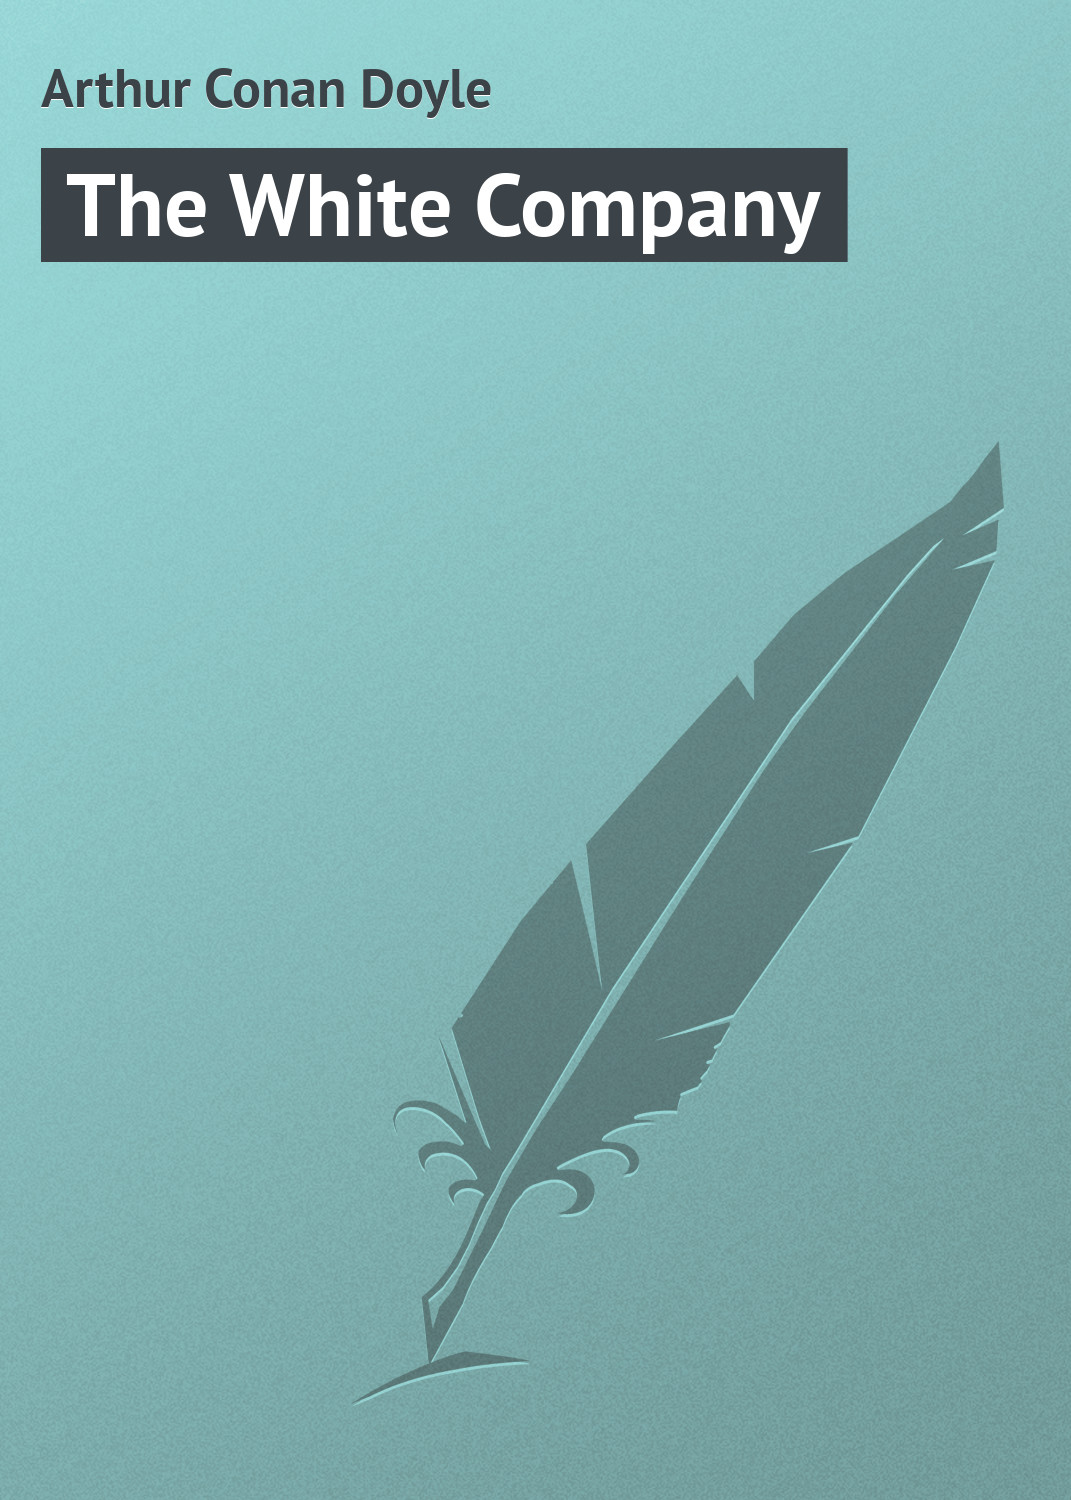 Фото - Артур Конан Дойл The White Company the penguin german phrasebook